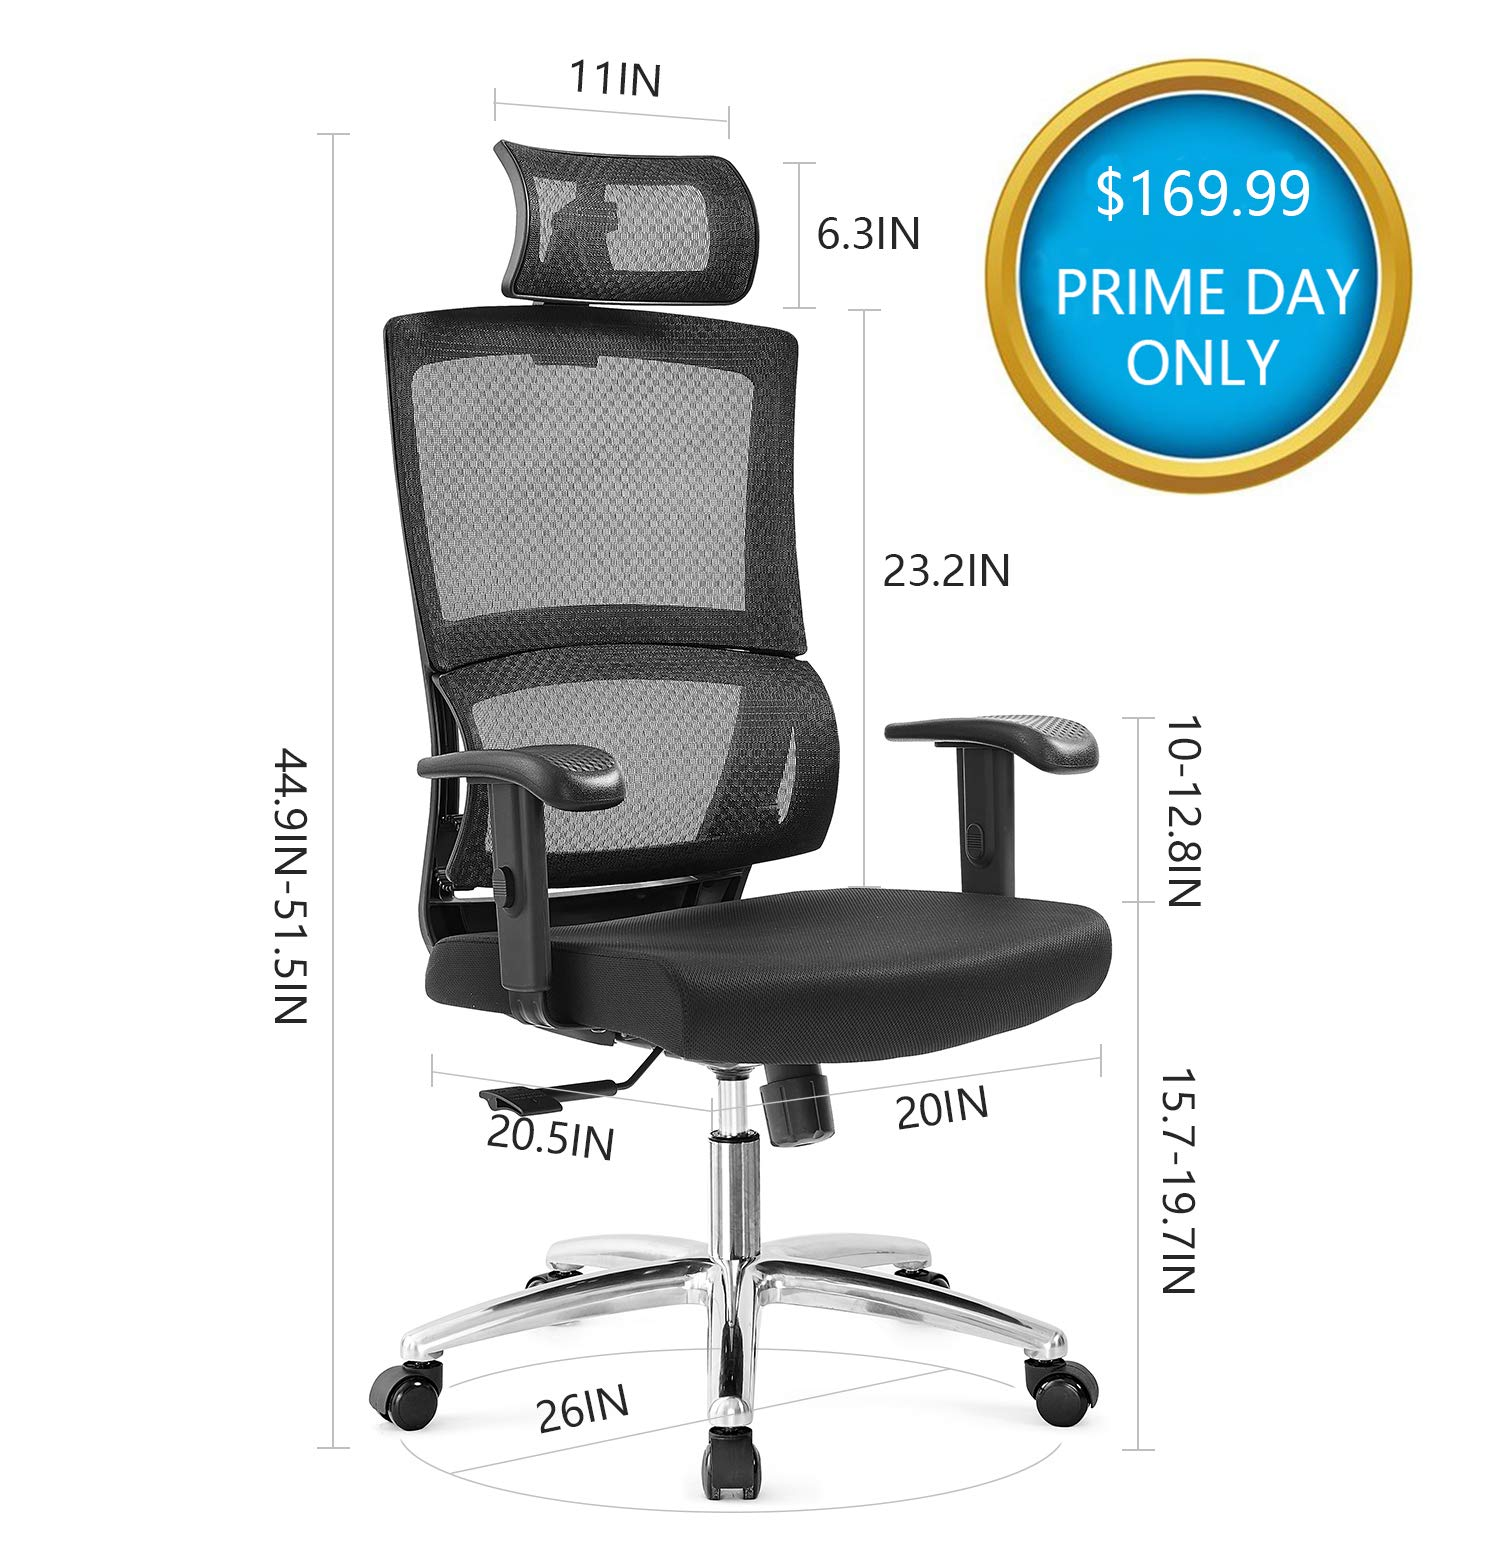 Ticova Ergonomic Office Chair with Unique Elastic Ring Lumbar Support and Thick Seat Cushion- High Back Mesh Chair with Adjustable Headrest and Armrest - Reclinable Computer Desk Chair by Ticova (Image #7)